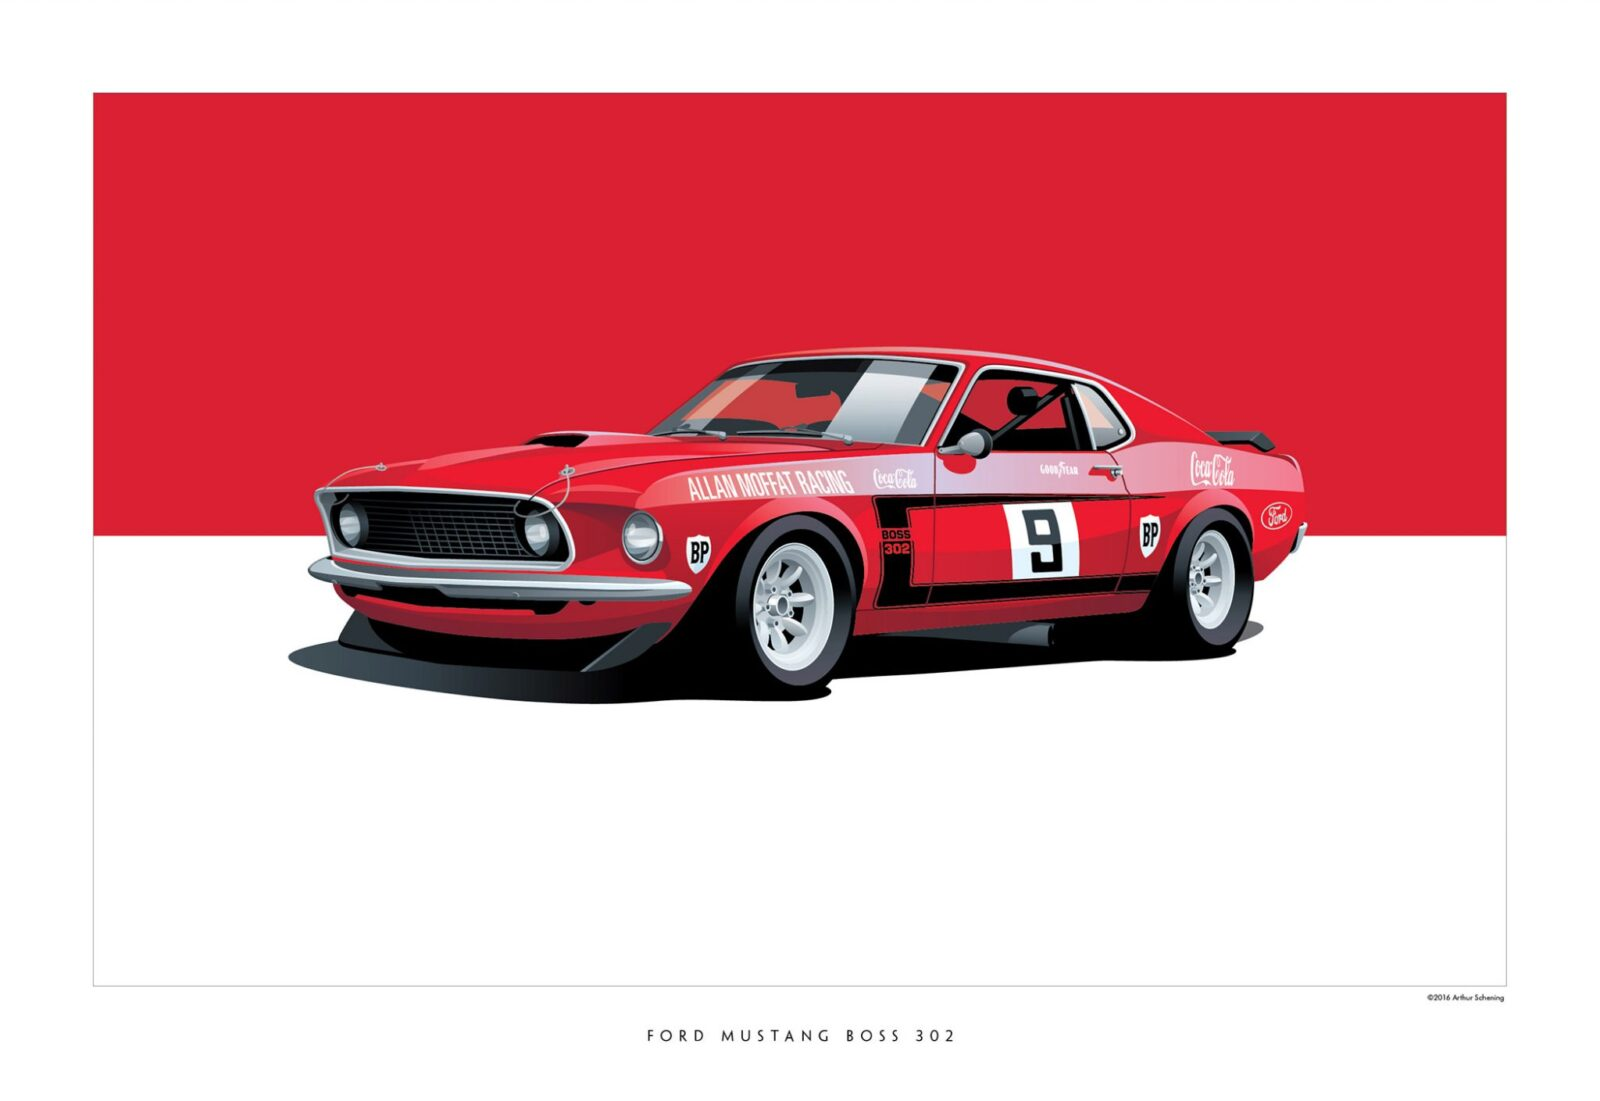 Mustang BOSS 302 1600x1101 - Iconic Racing Cars by Arthur Schening